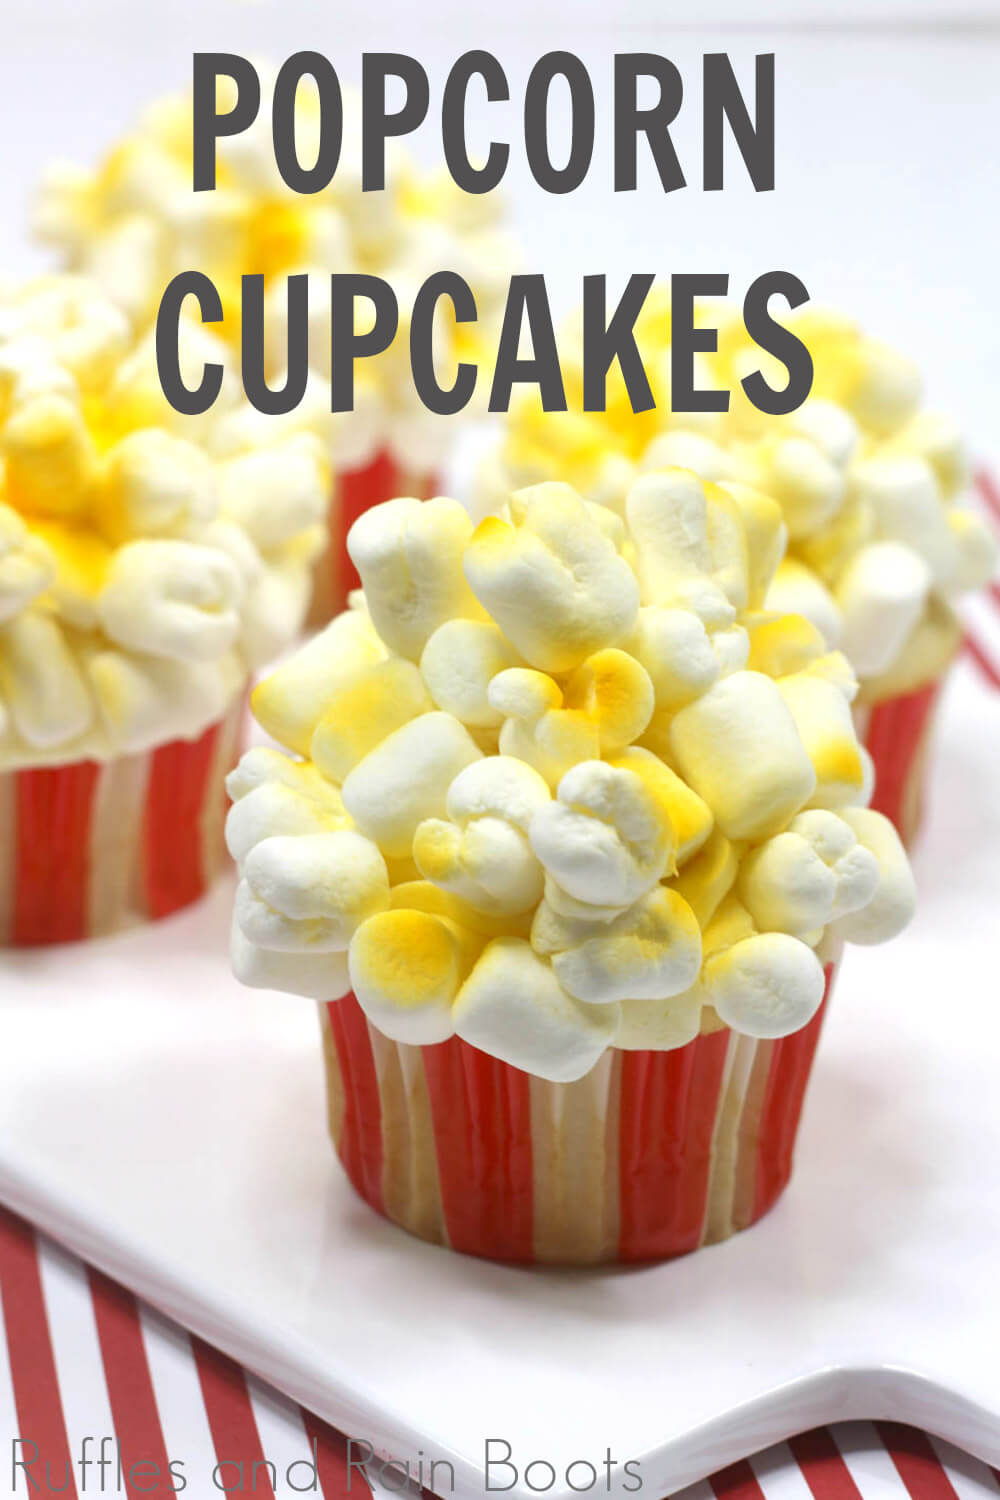 yellow and white fun popcorn cupcakes for party on a white board on a red and white background